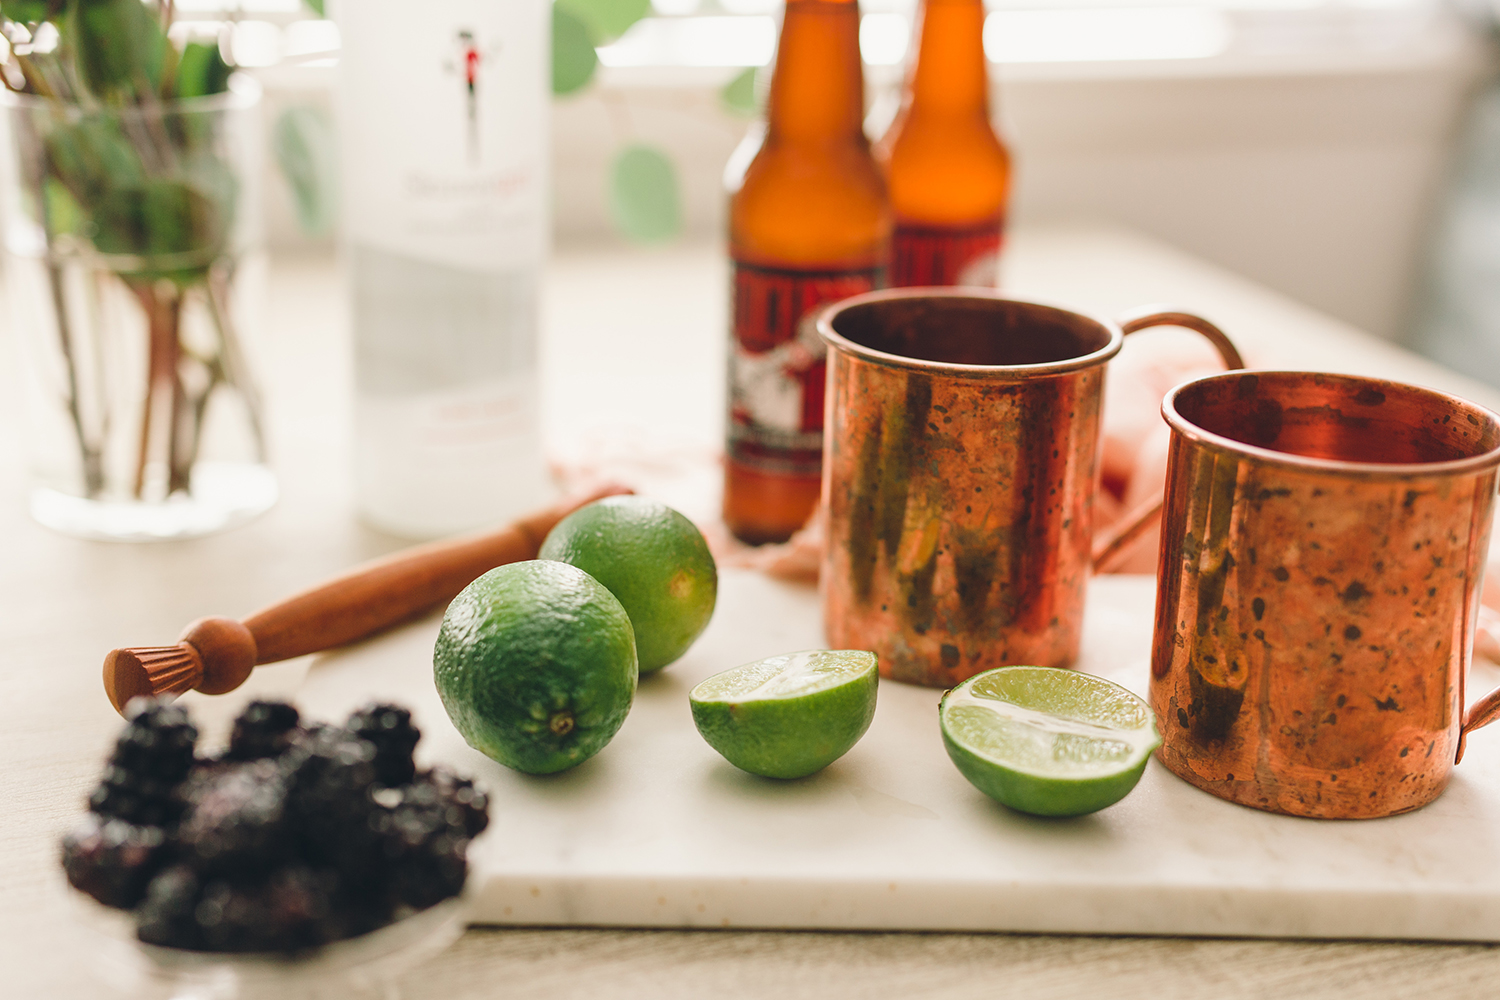 Ingredients for blackberry moscow mules | A Fabulous Fete